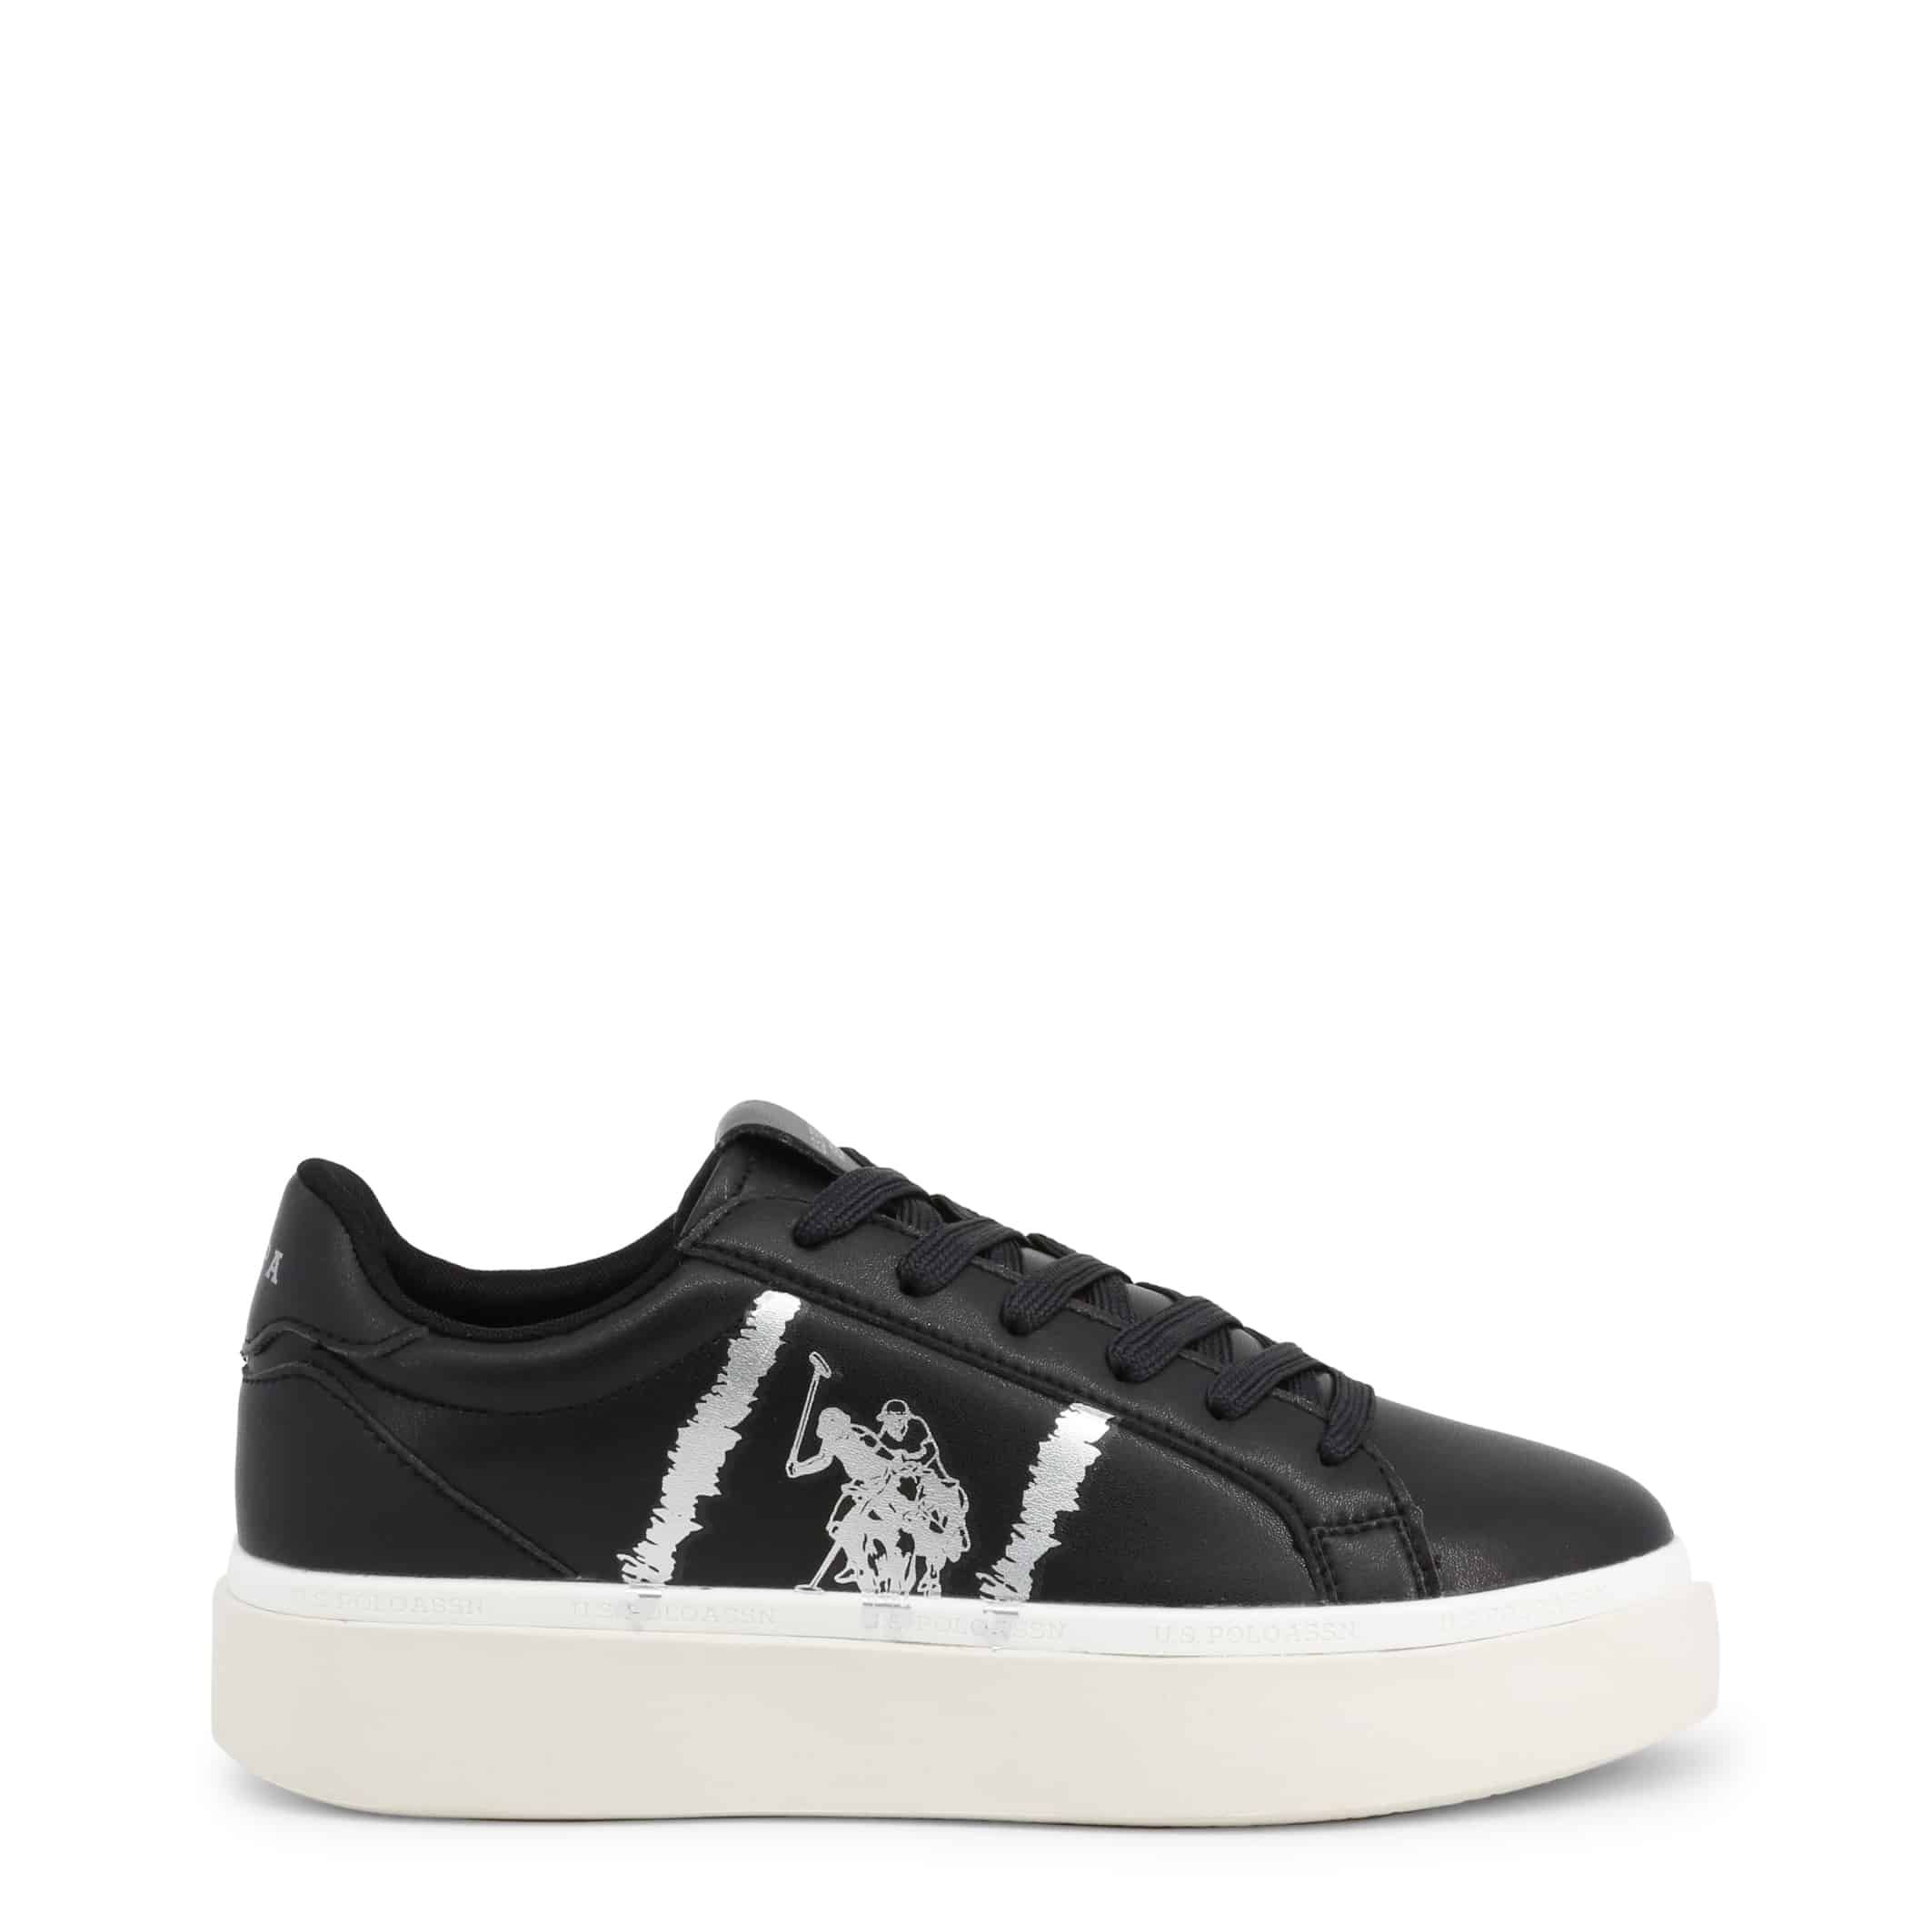 U.S. Polo Assn. – LUCY4179S0_Y1 – Negro